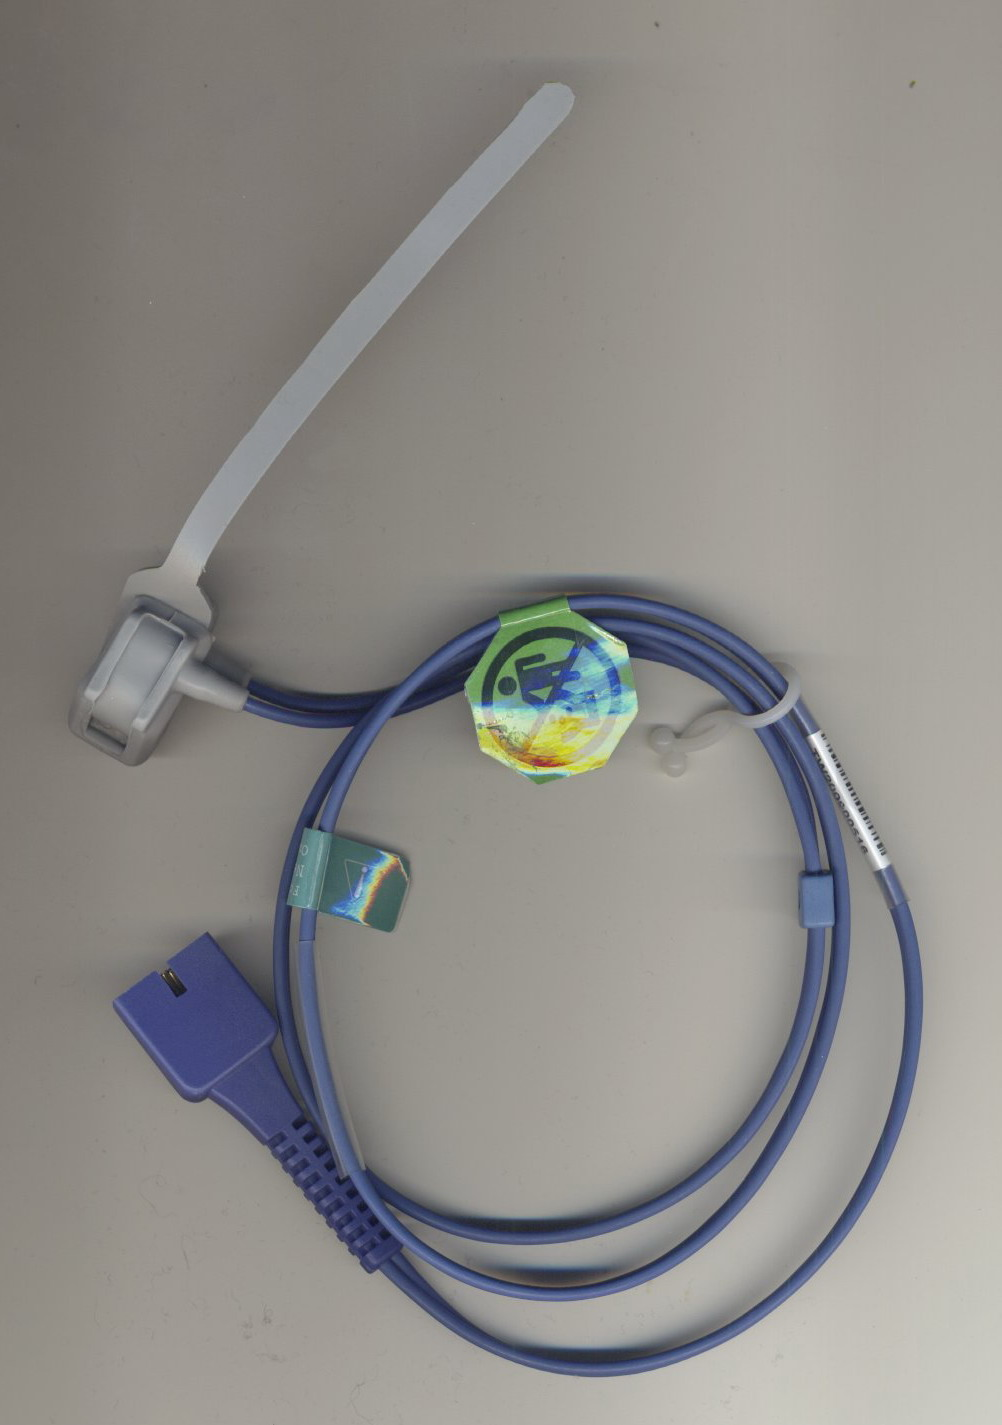 Neonate Spo2 Sensor Soft-D type